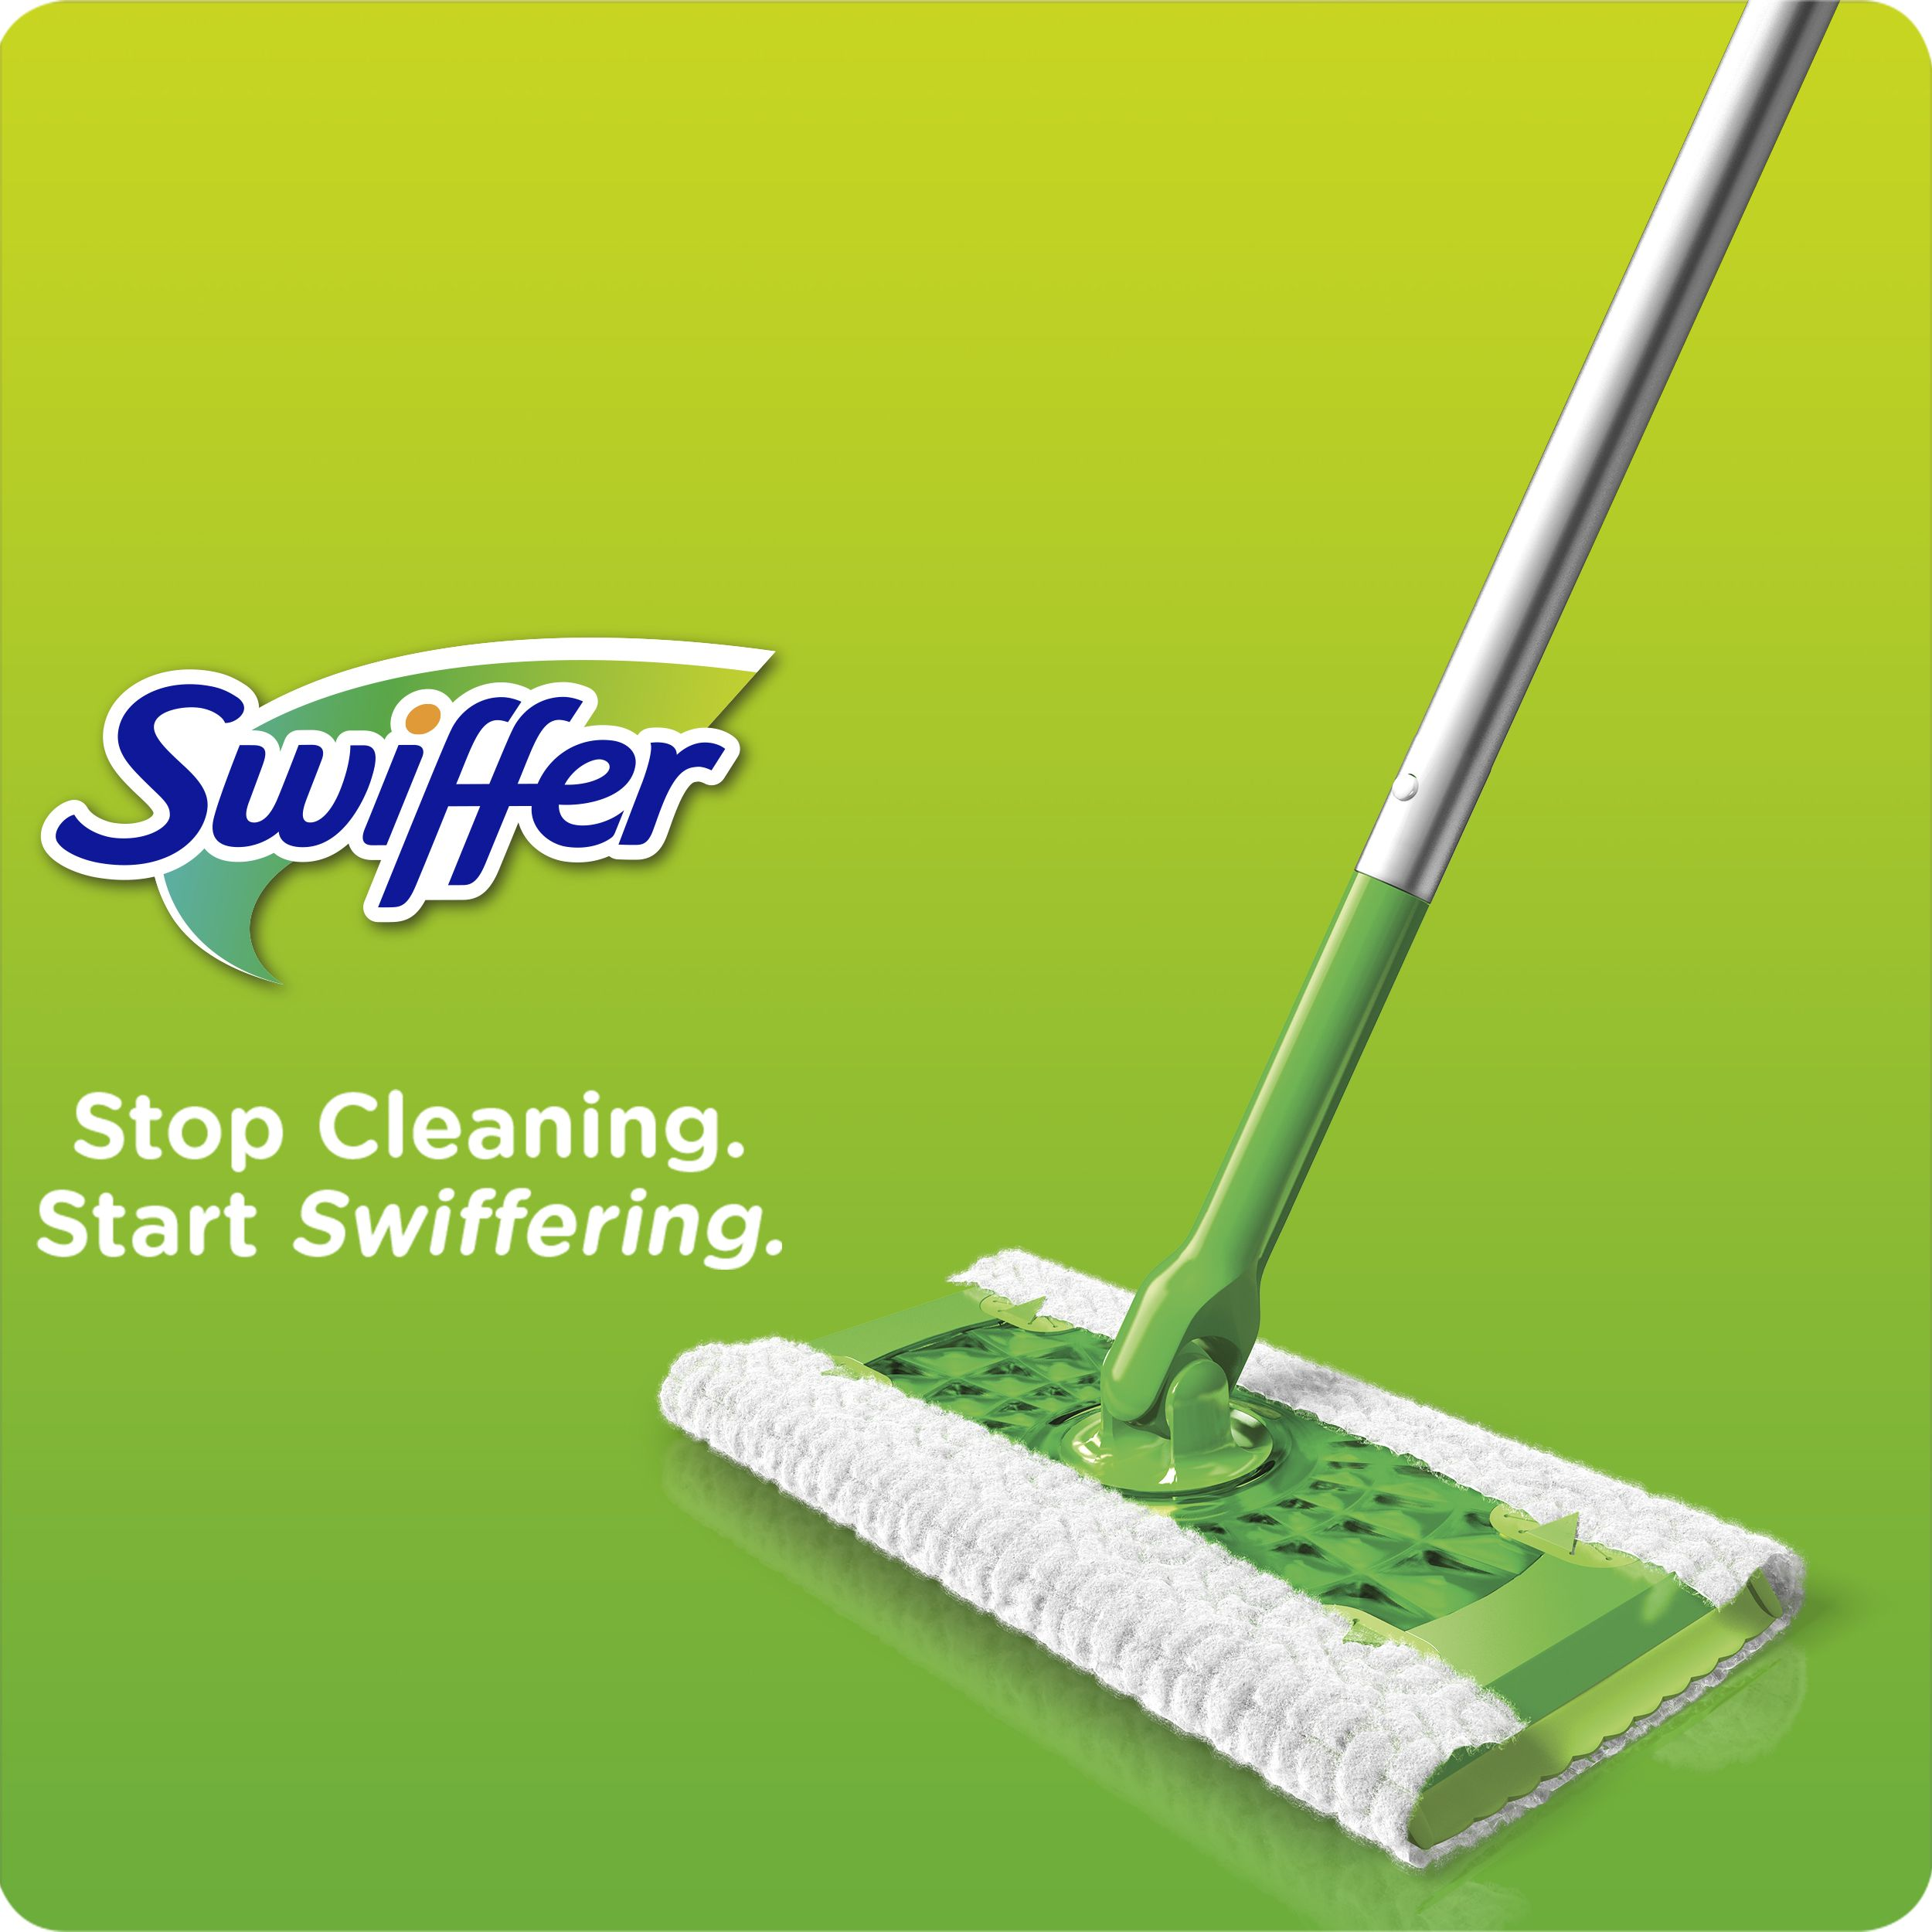 Swiffer Sweeper Pet Heavy Duty Dry Sweeping Cloth Refills With Febreze Odor Defense 32 Count Ad Duty Aff Dry Sweeping Swiffer Febreze Cleaning